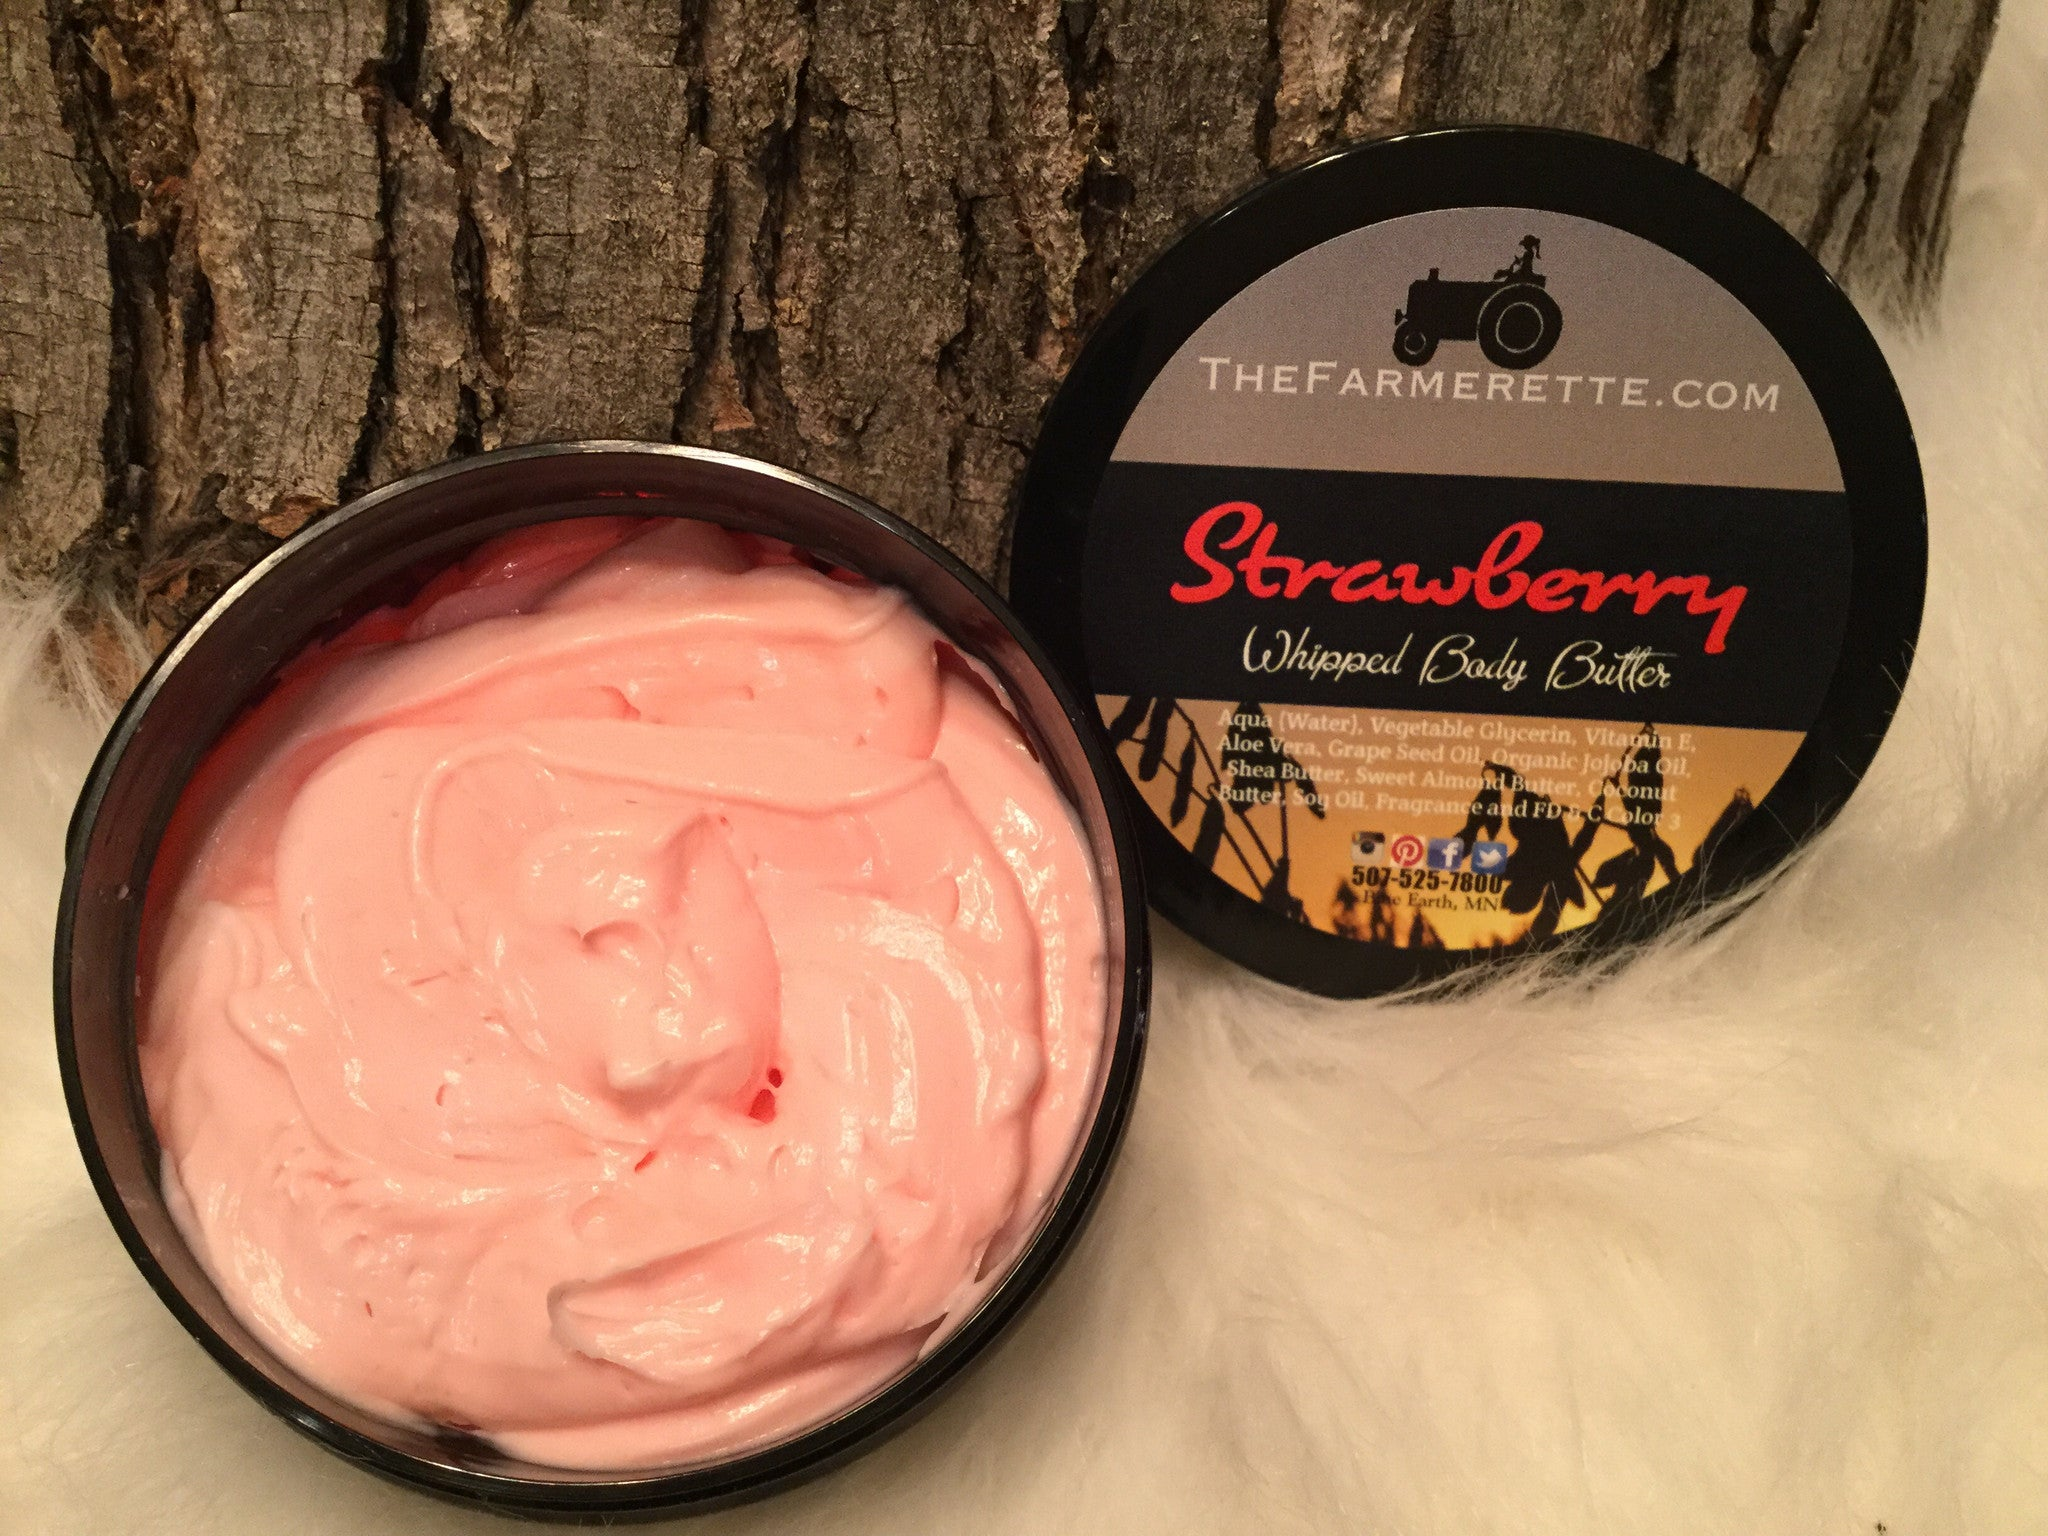 Whipped Body Butter 8oz